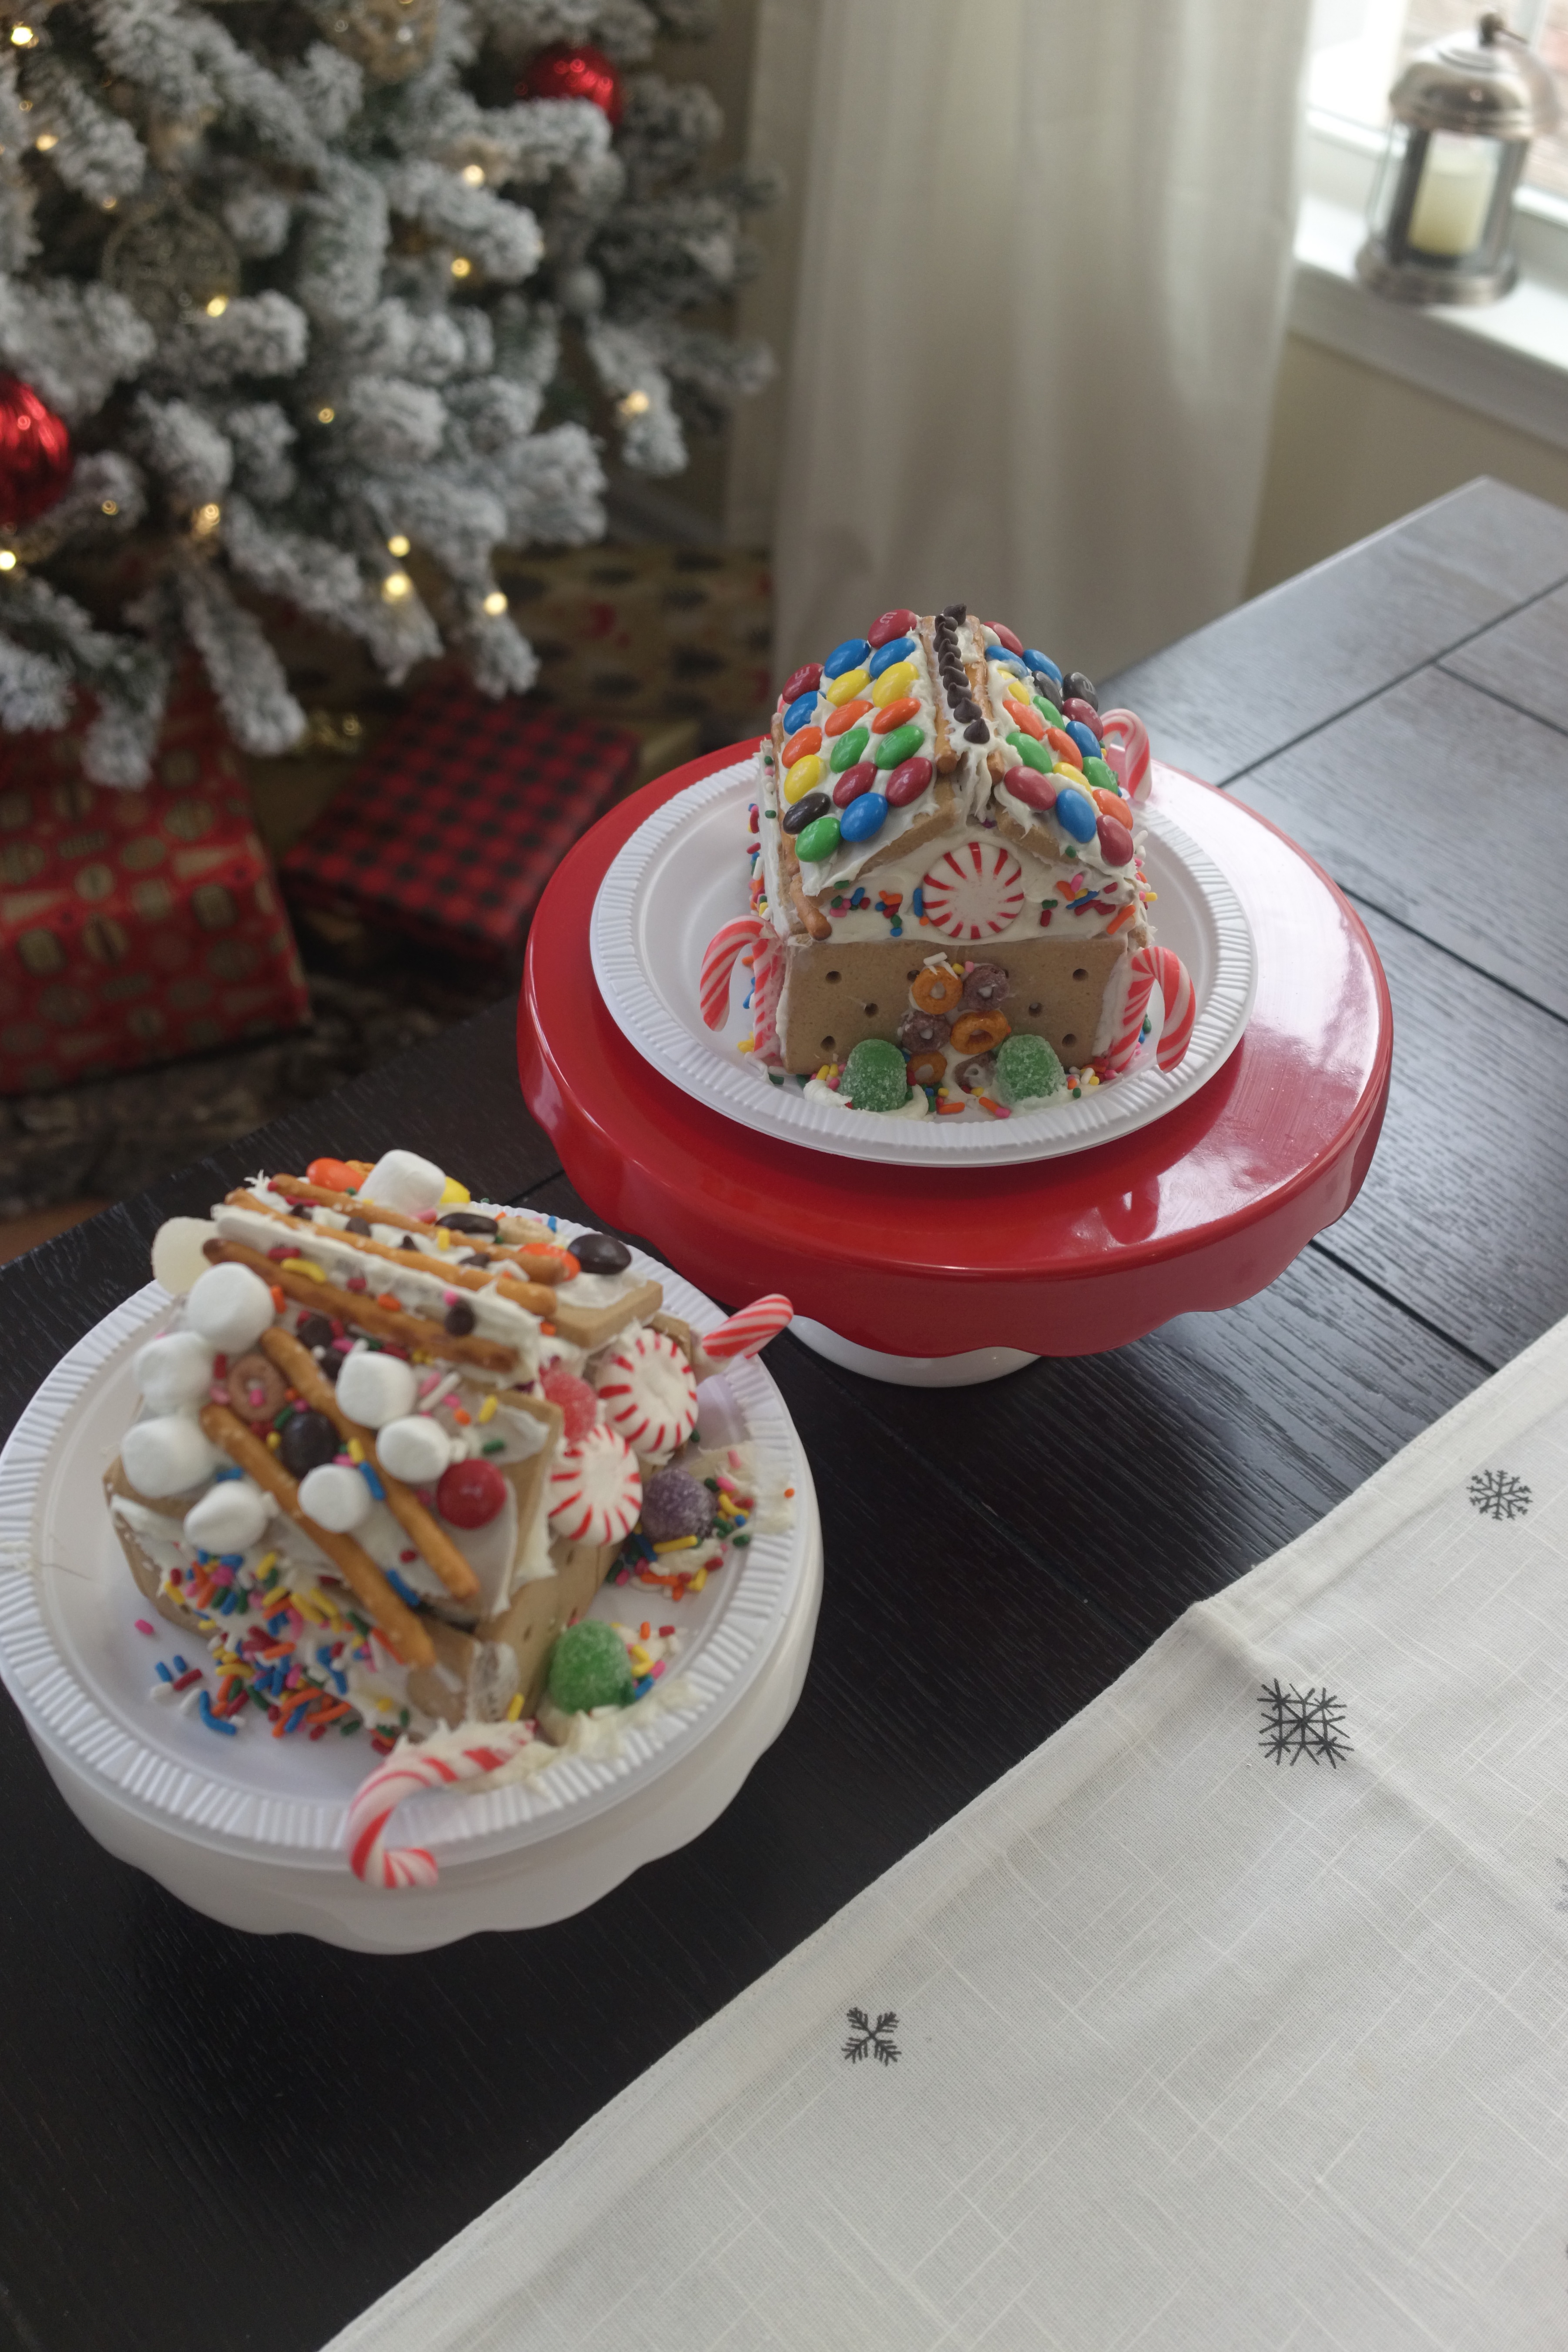 Milk Carton Gingerbread Houses